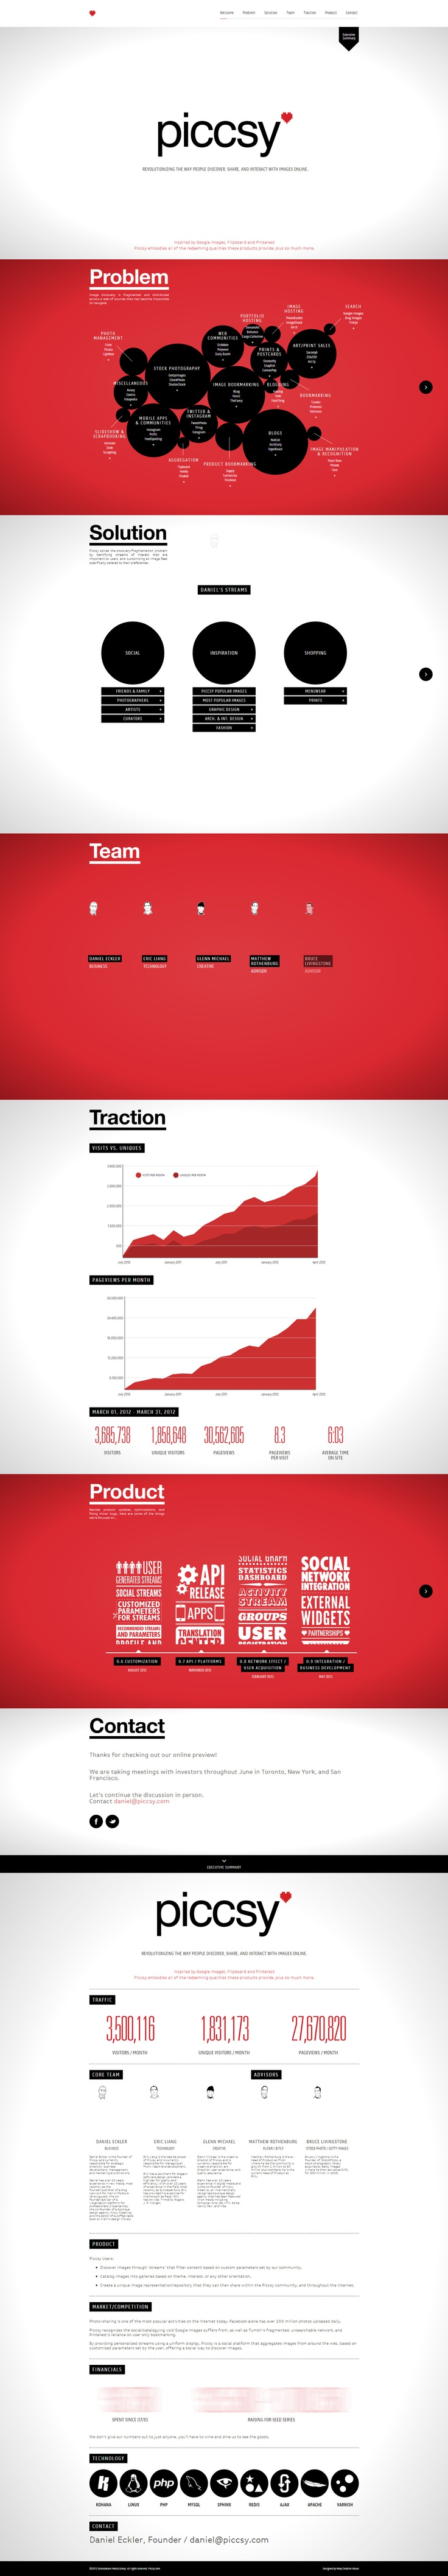 Be inspired by Piccsy Investor Pitchdeck #infographic #minimaldesign #uidesign #websitedesign #designinspiration